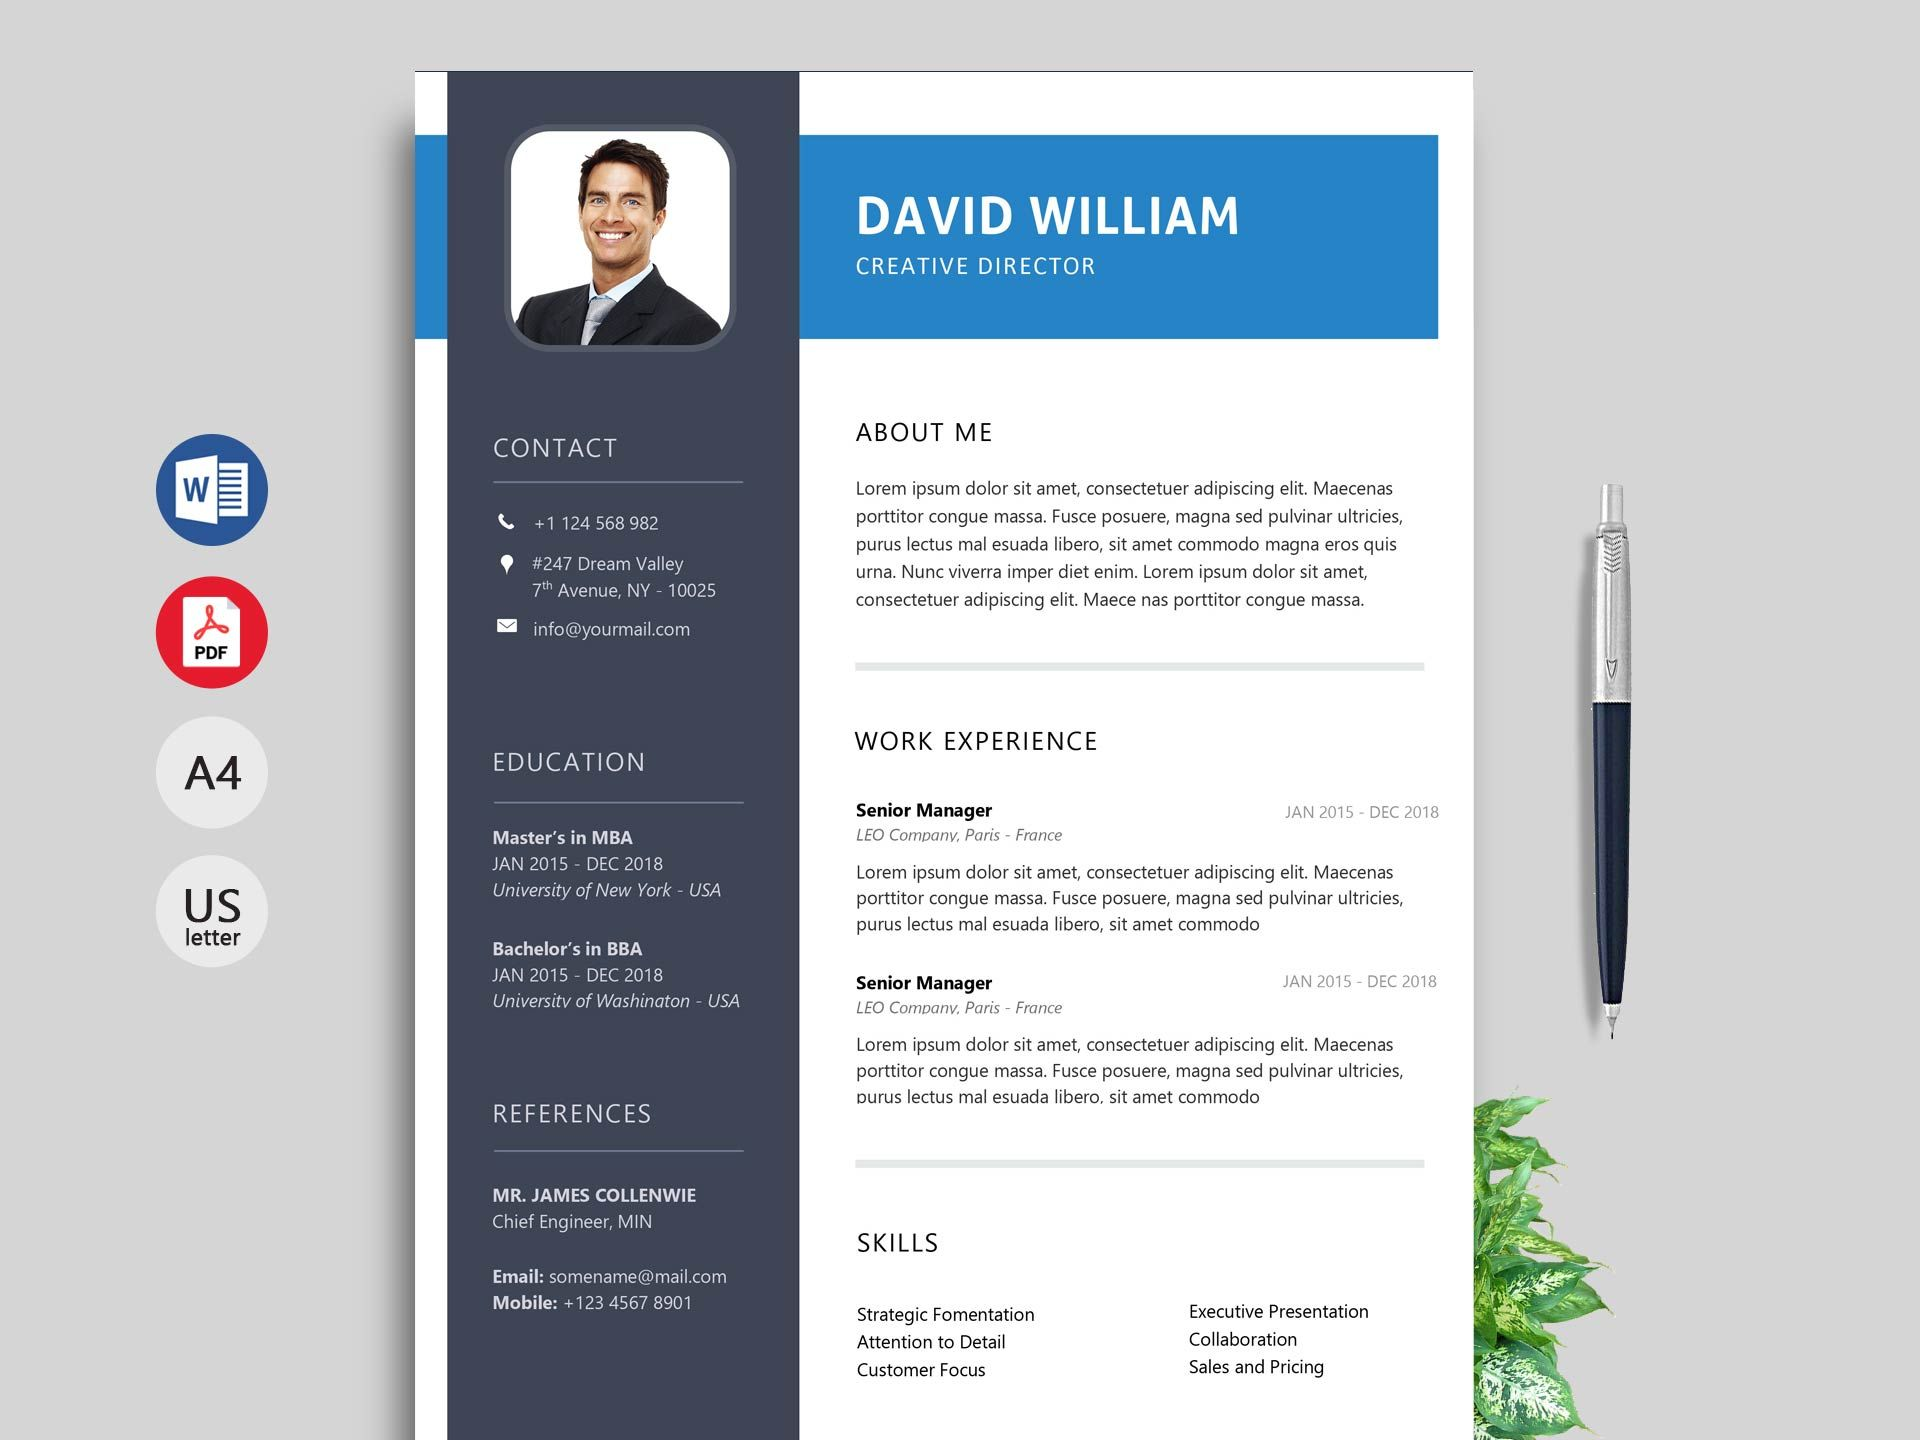 Simple Resume Format Cv Template Free Download 2020 Simple Resume Format Modern Resume Template Cv Template Free